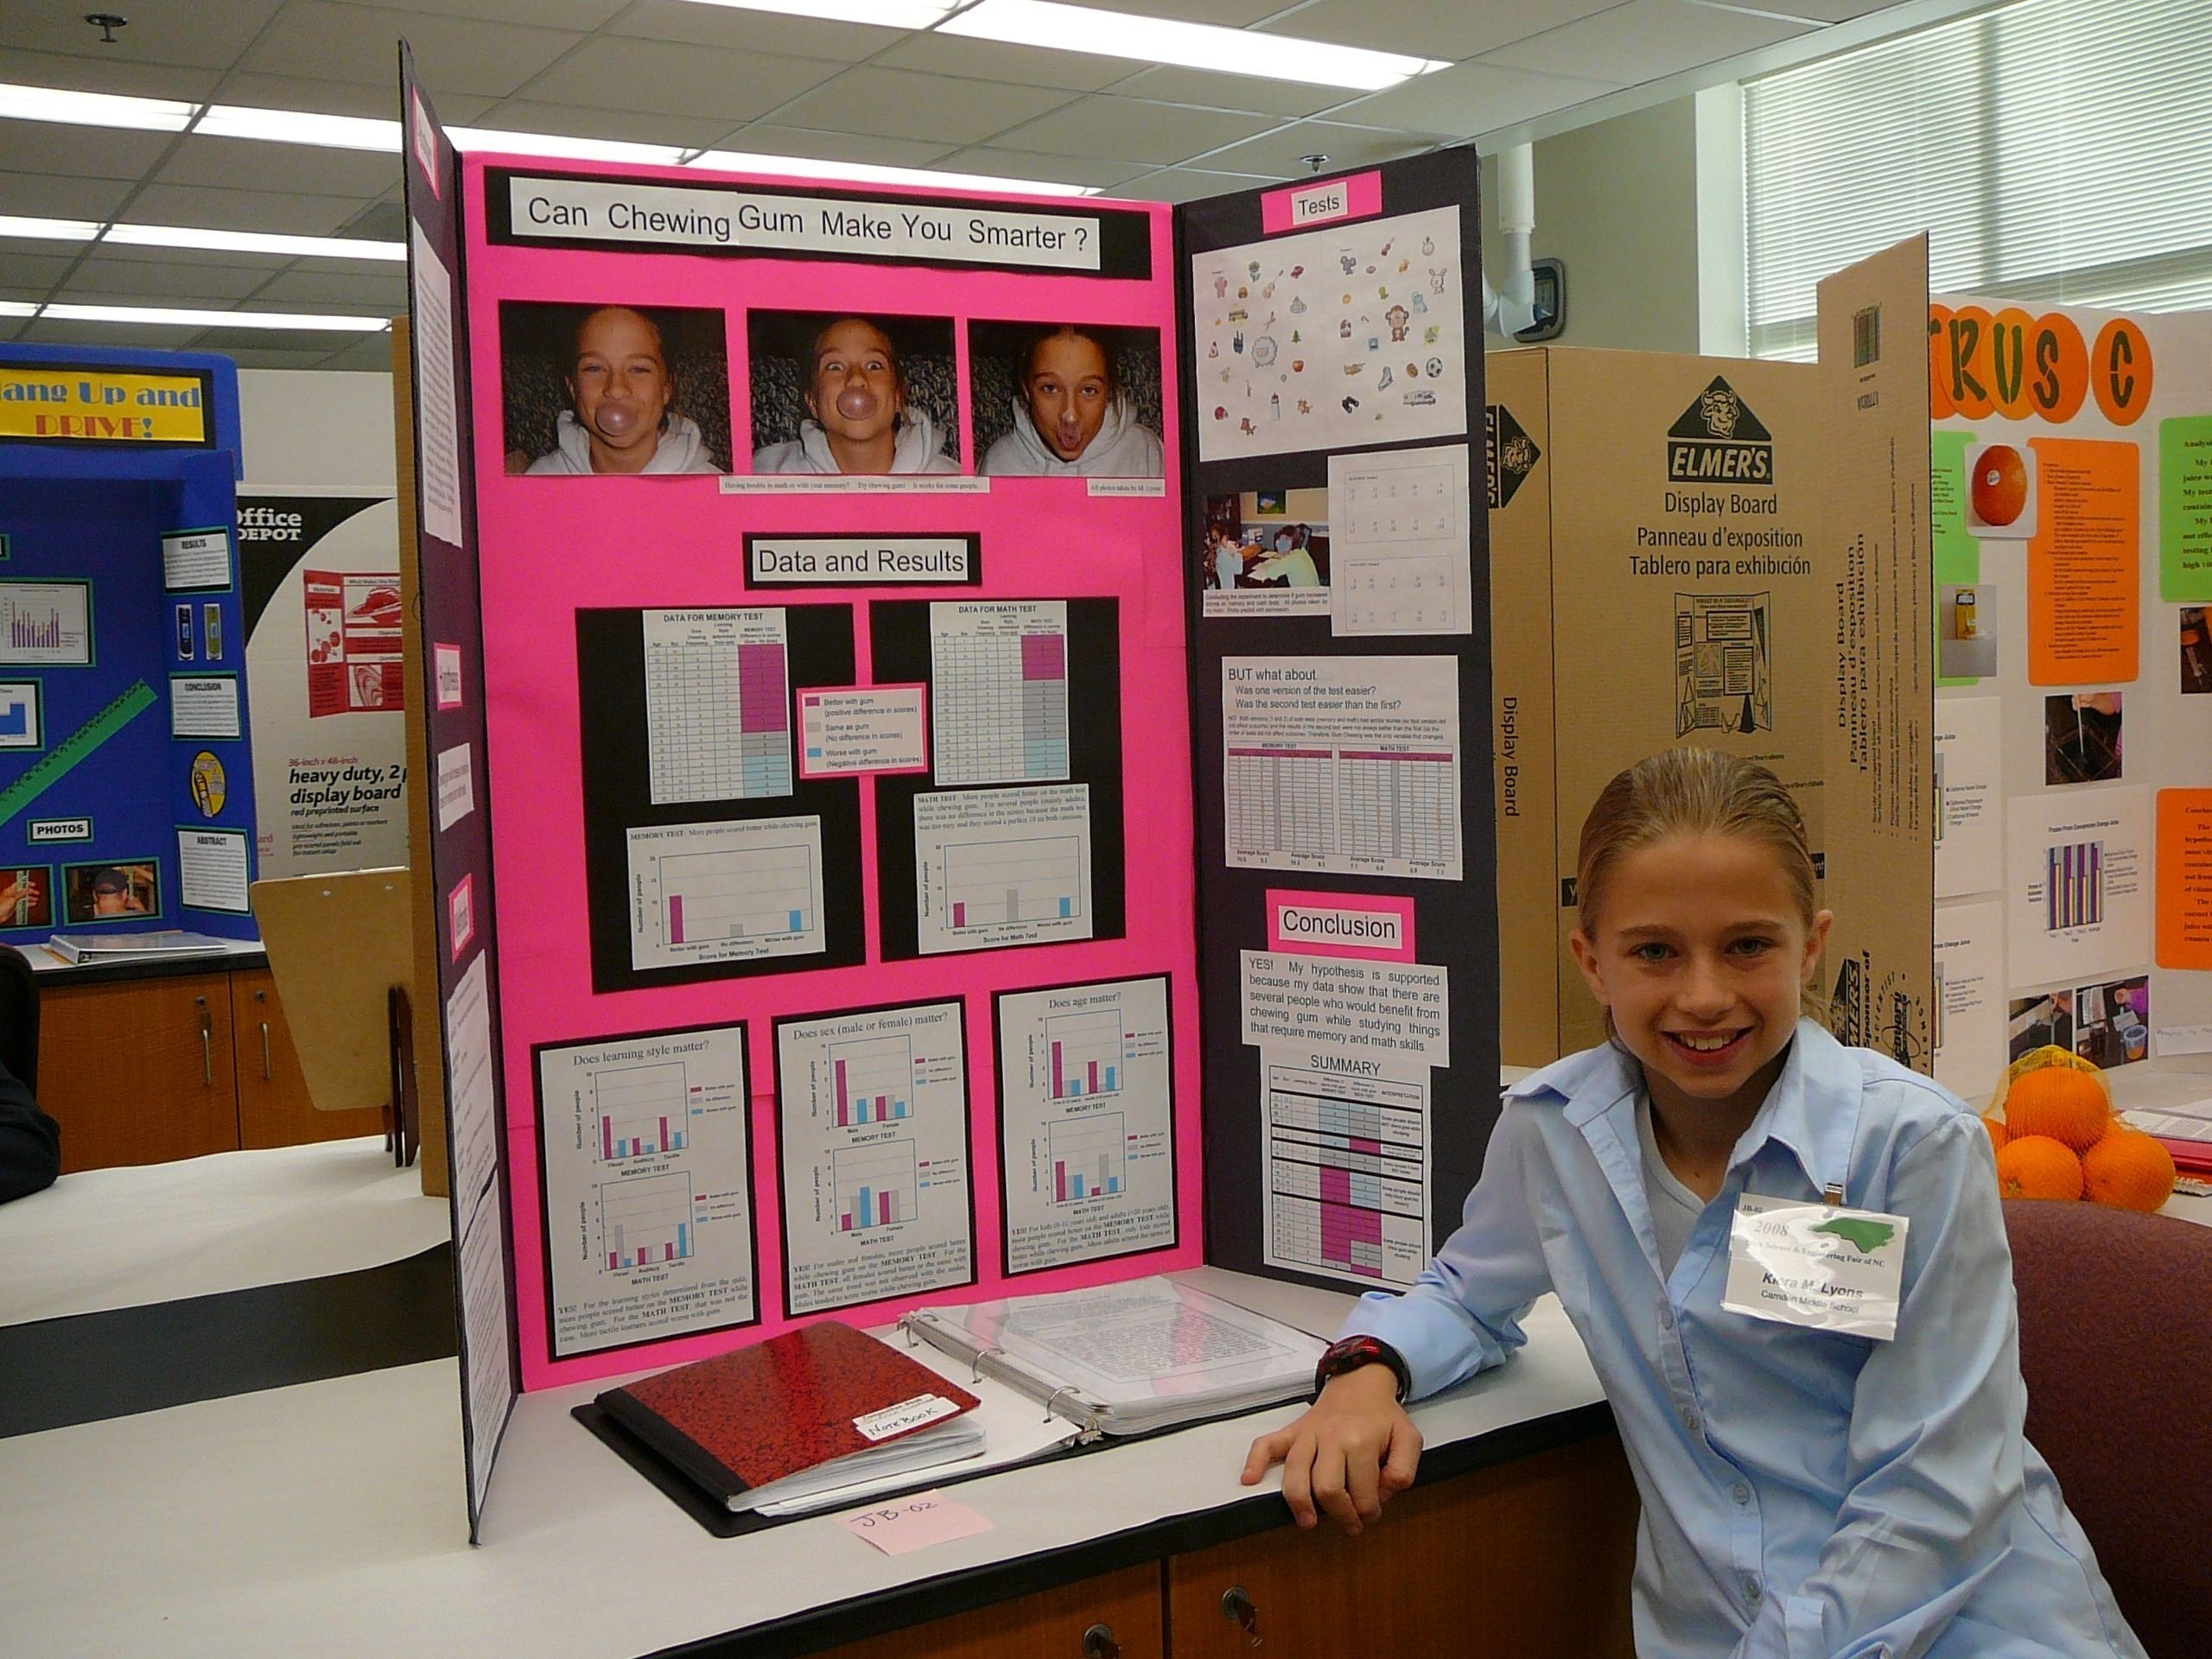 10 Lovely What Are Some Science Fair Ideas image result for bubble gum science project school experiment 1 2020